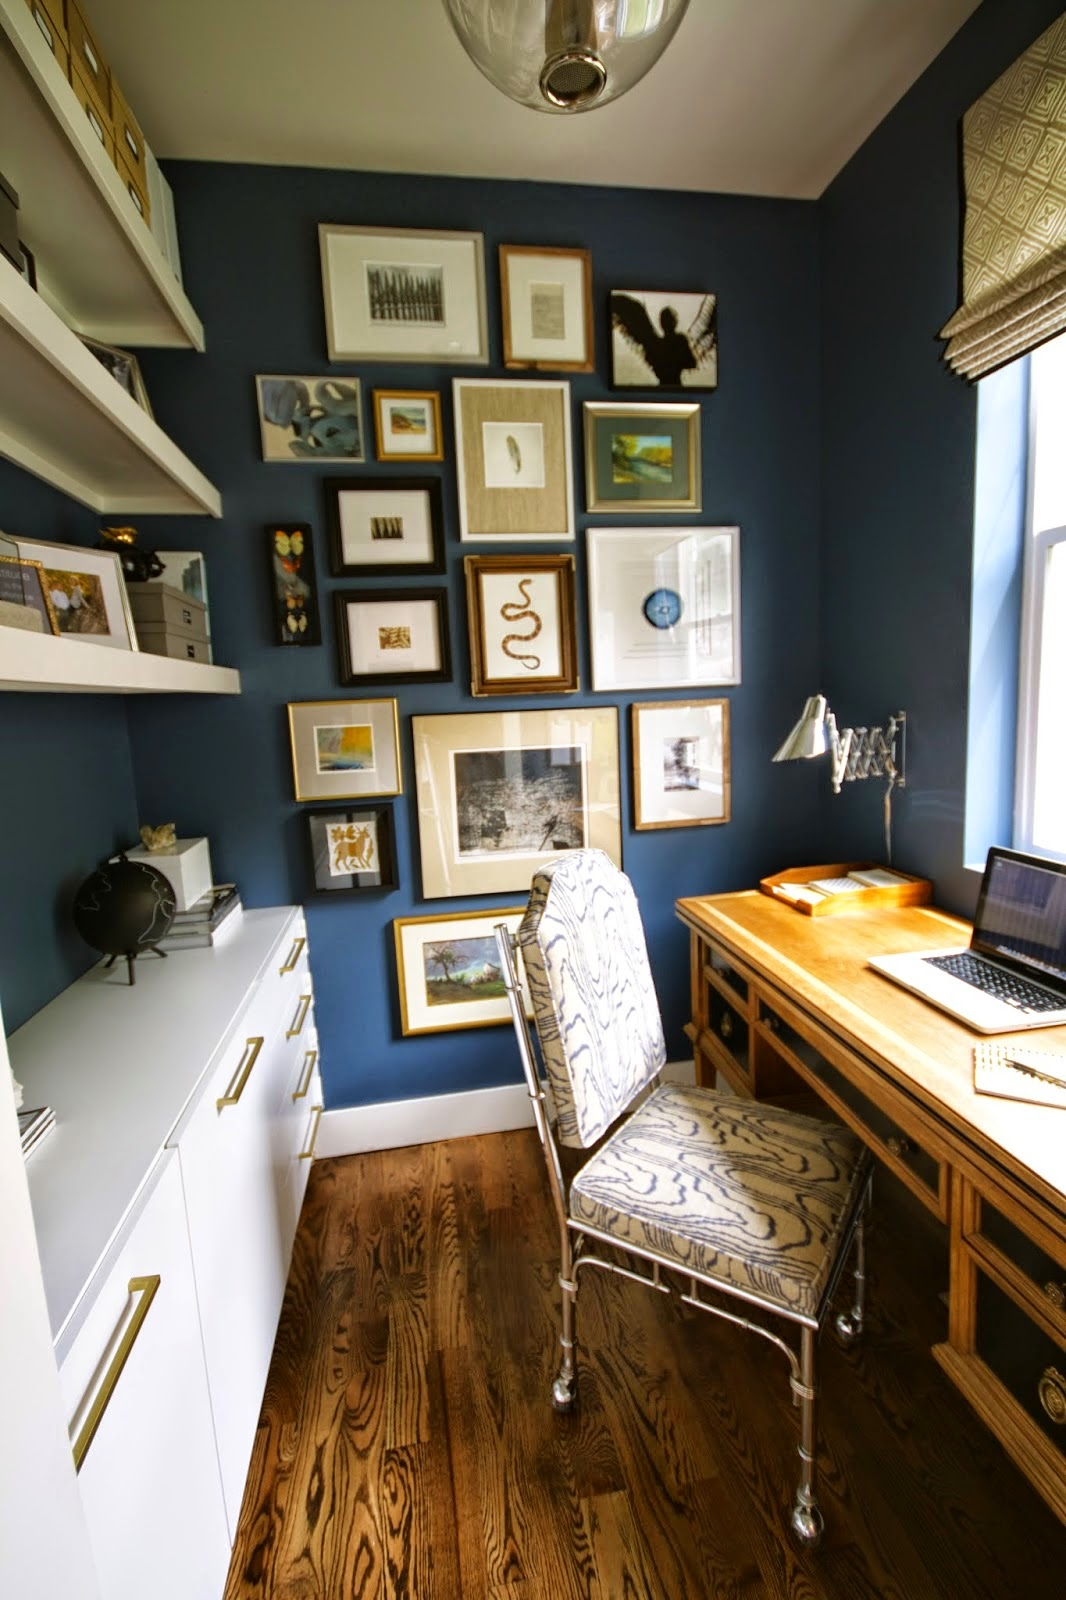 The shabby nest beautiful home office design dump - Home office design ...